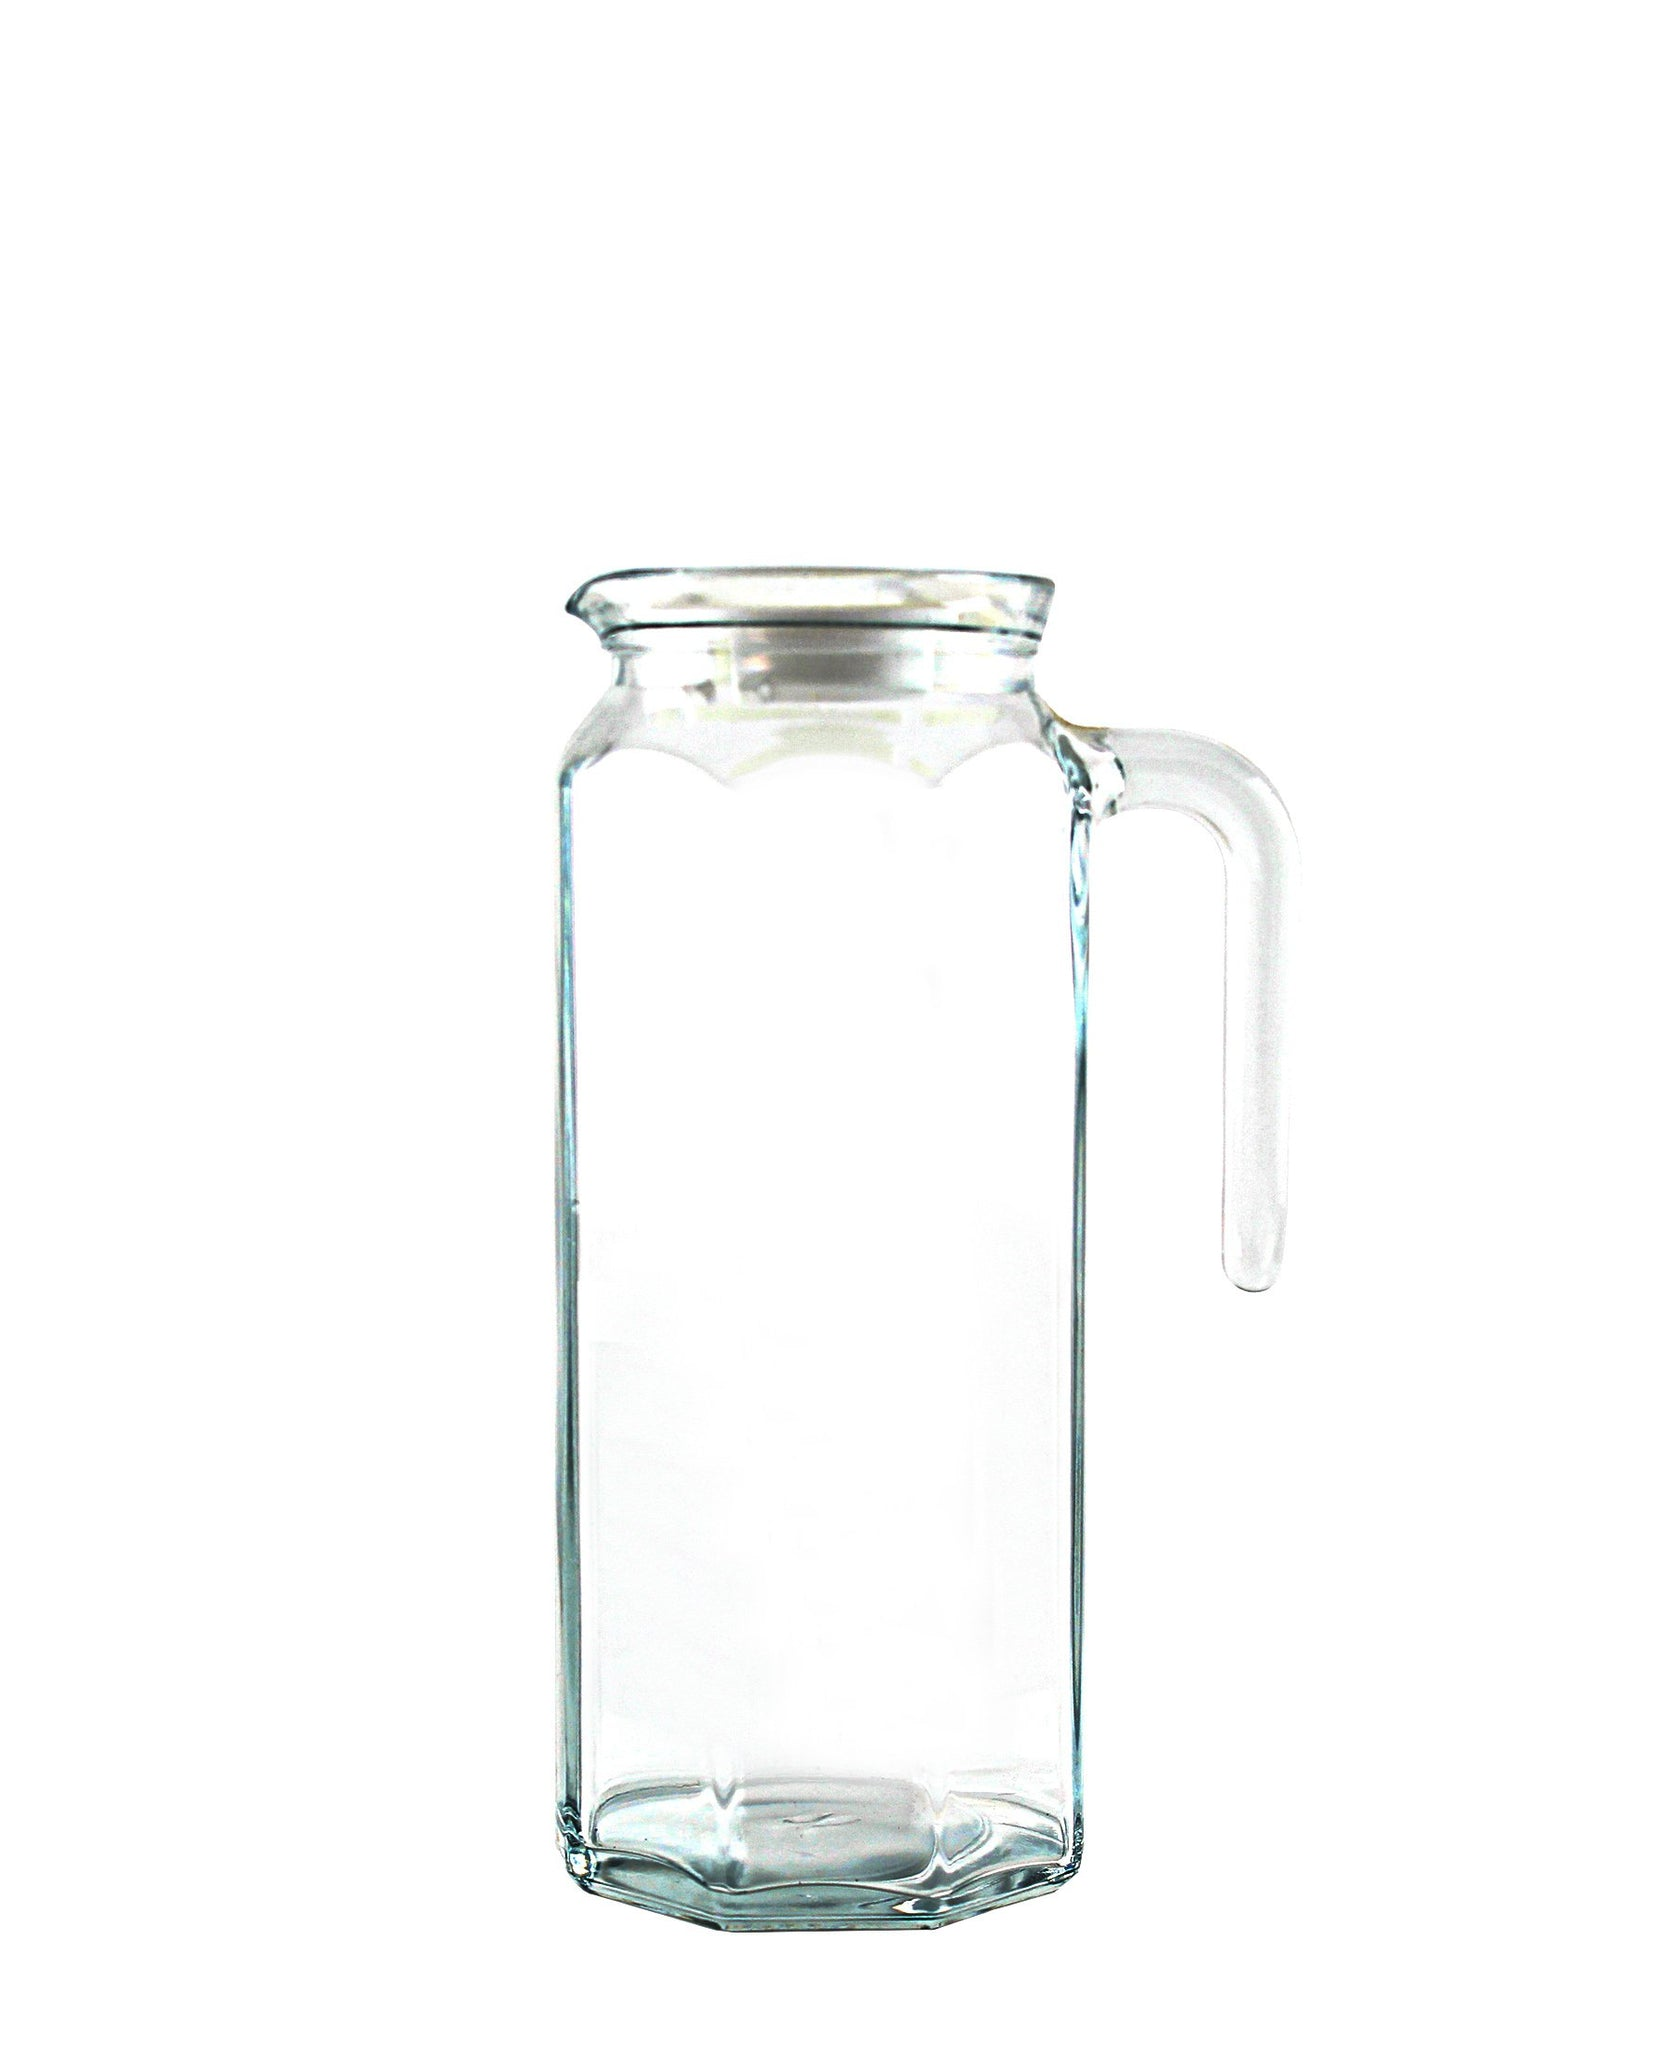 Pasabahce Kosem Jug With Lid 1LT - Clear